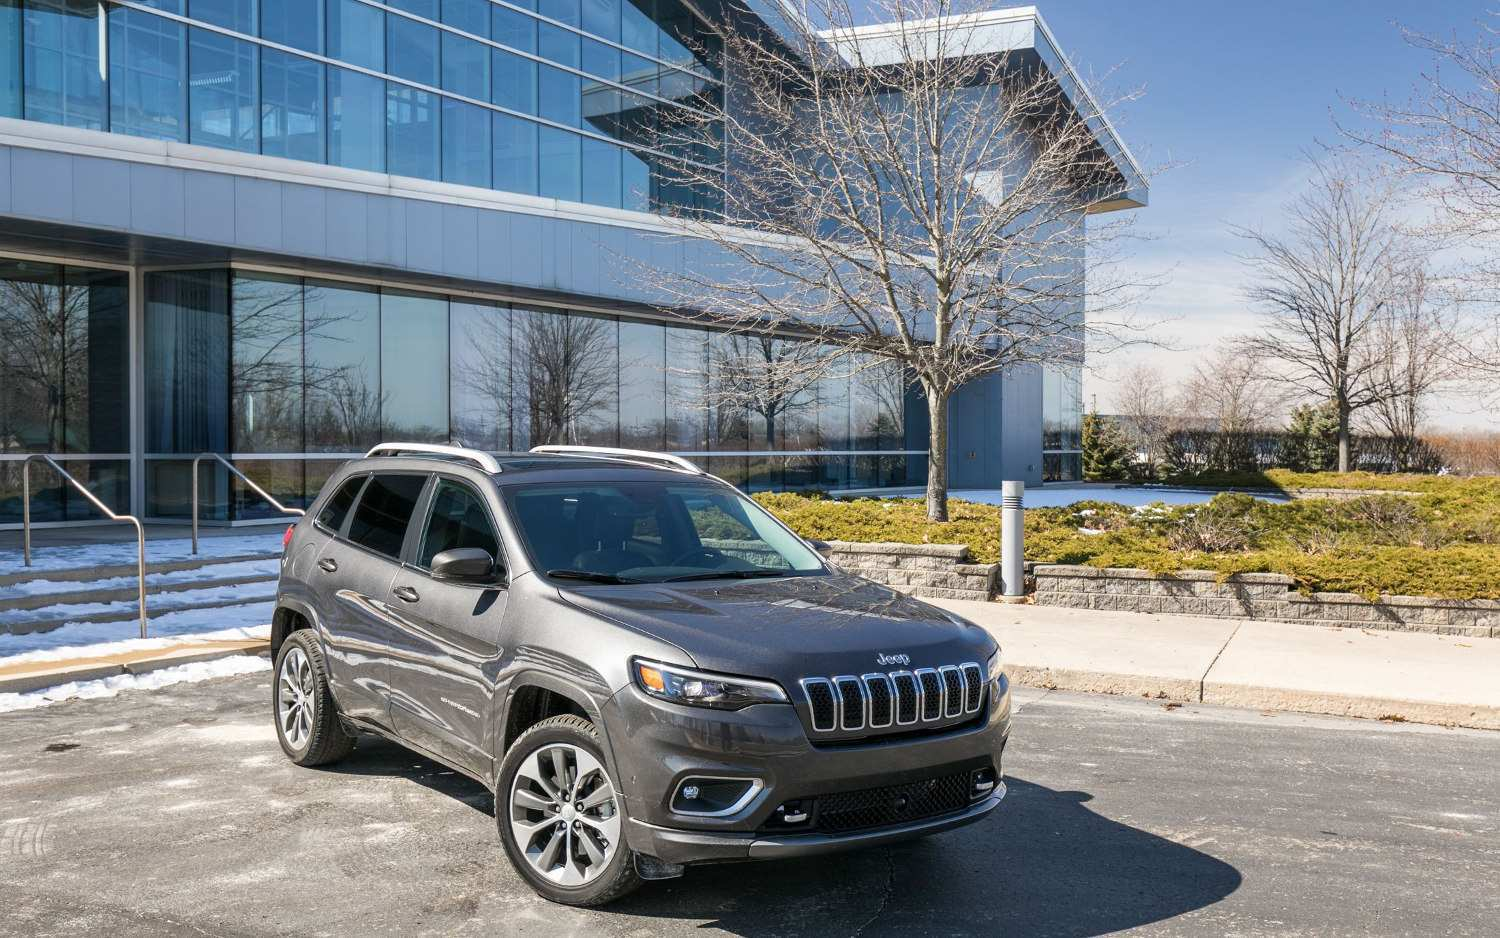 27 New The 2019 Jeep Cherokee Vs Subaru Outback Interior Exterior And Review Picture for The 2019 Jeep Cherokee Vs Subaru Outback Interior Exterior And Review